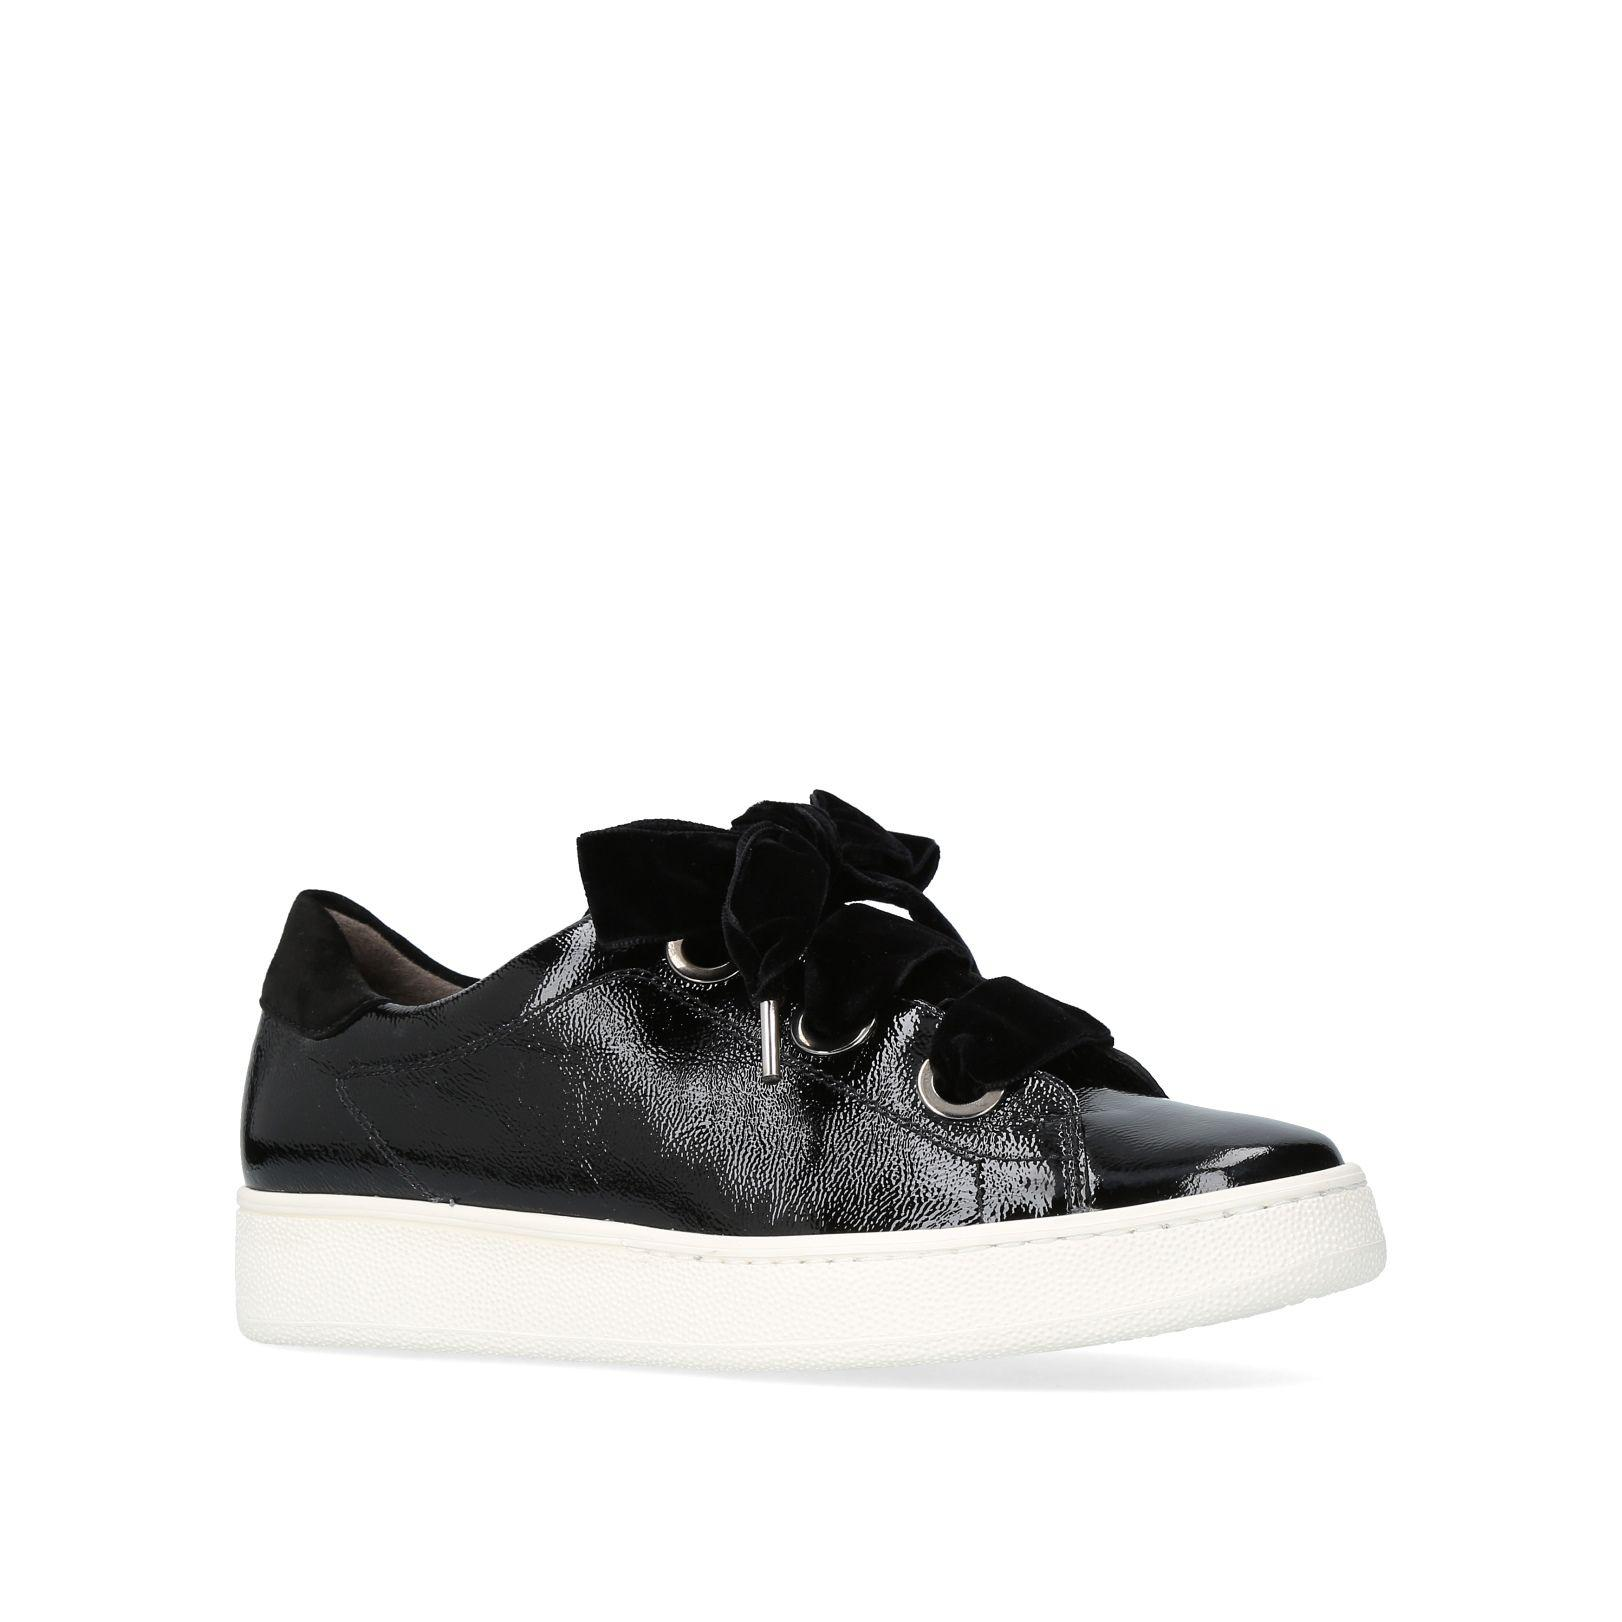 Paul Green. Women's Black Nicola Lace Up Trainers